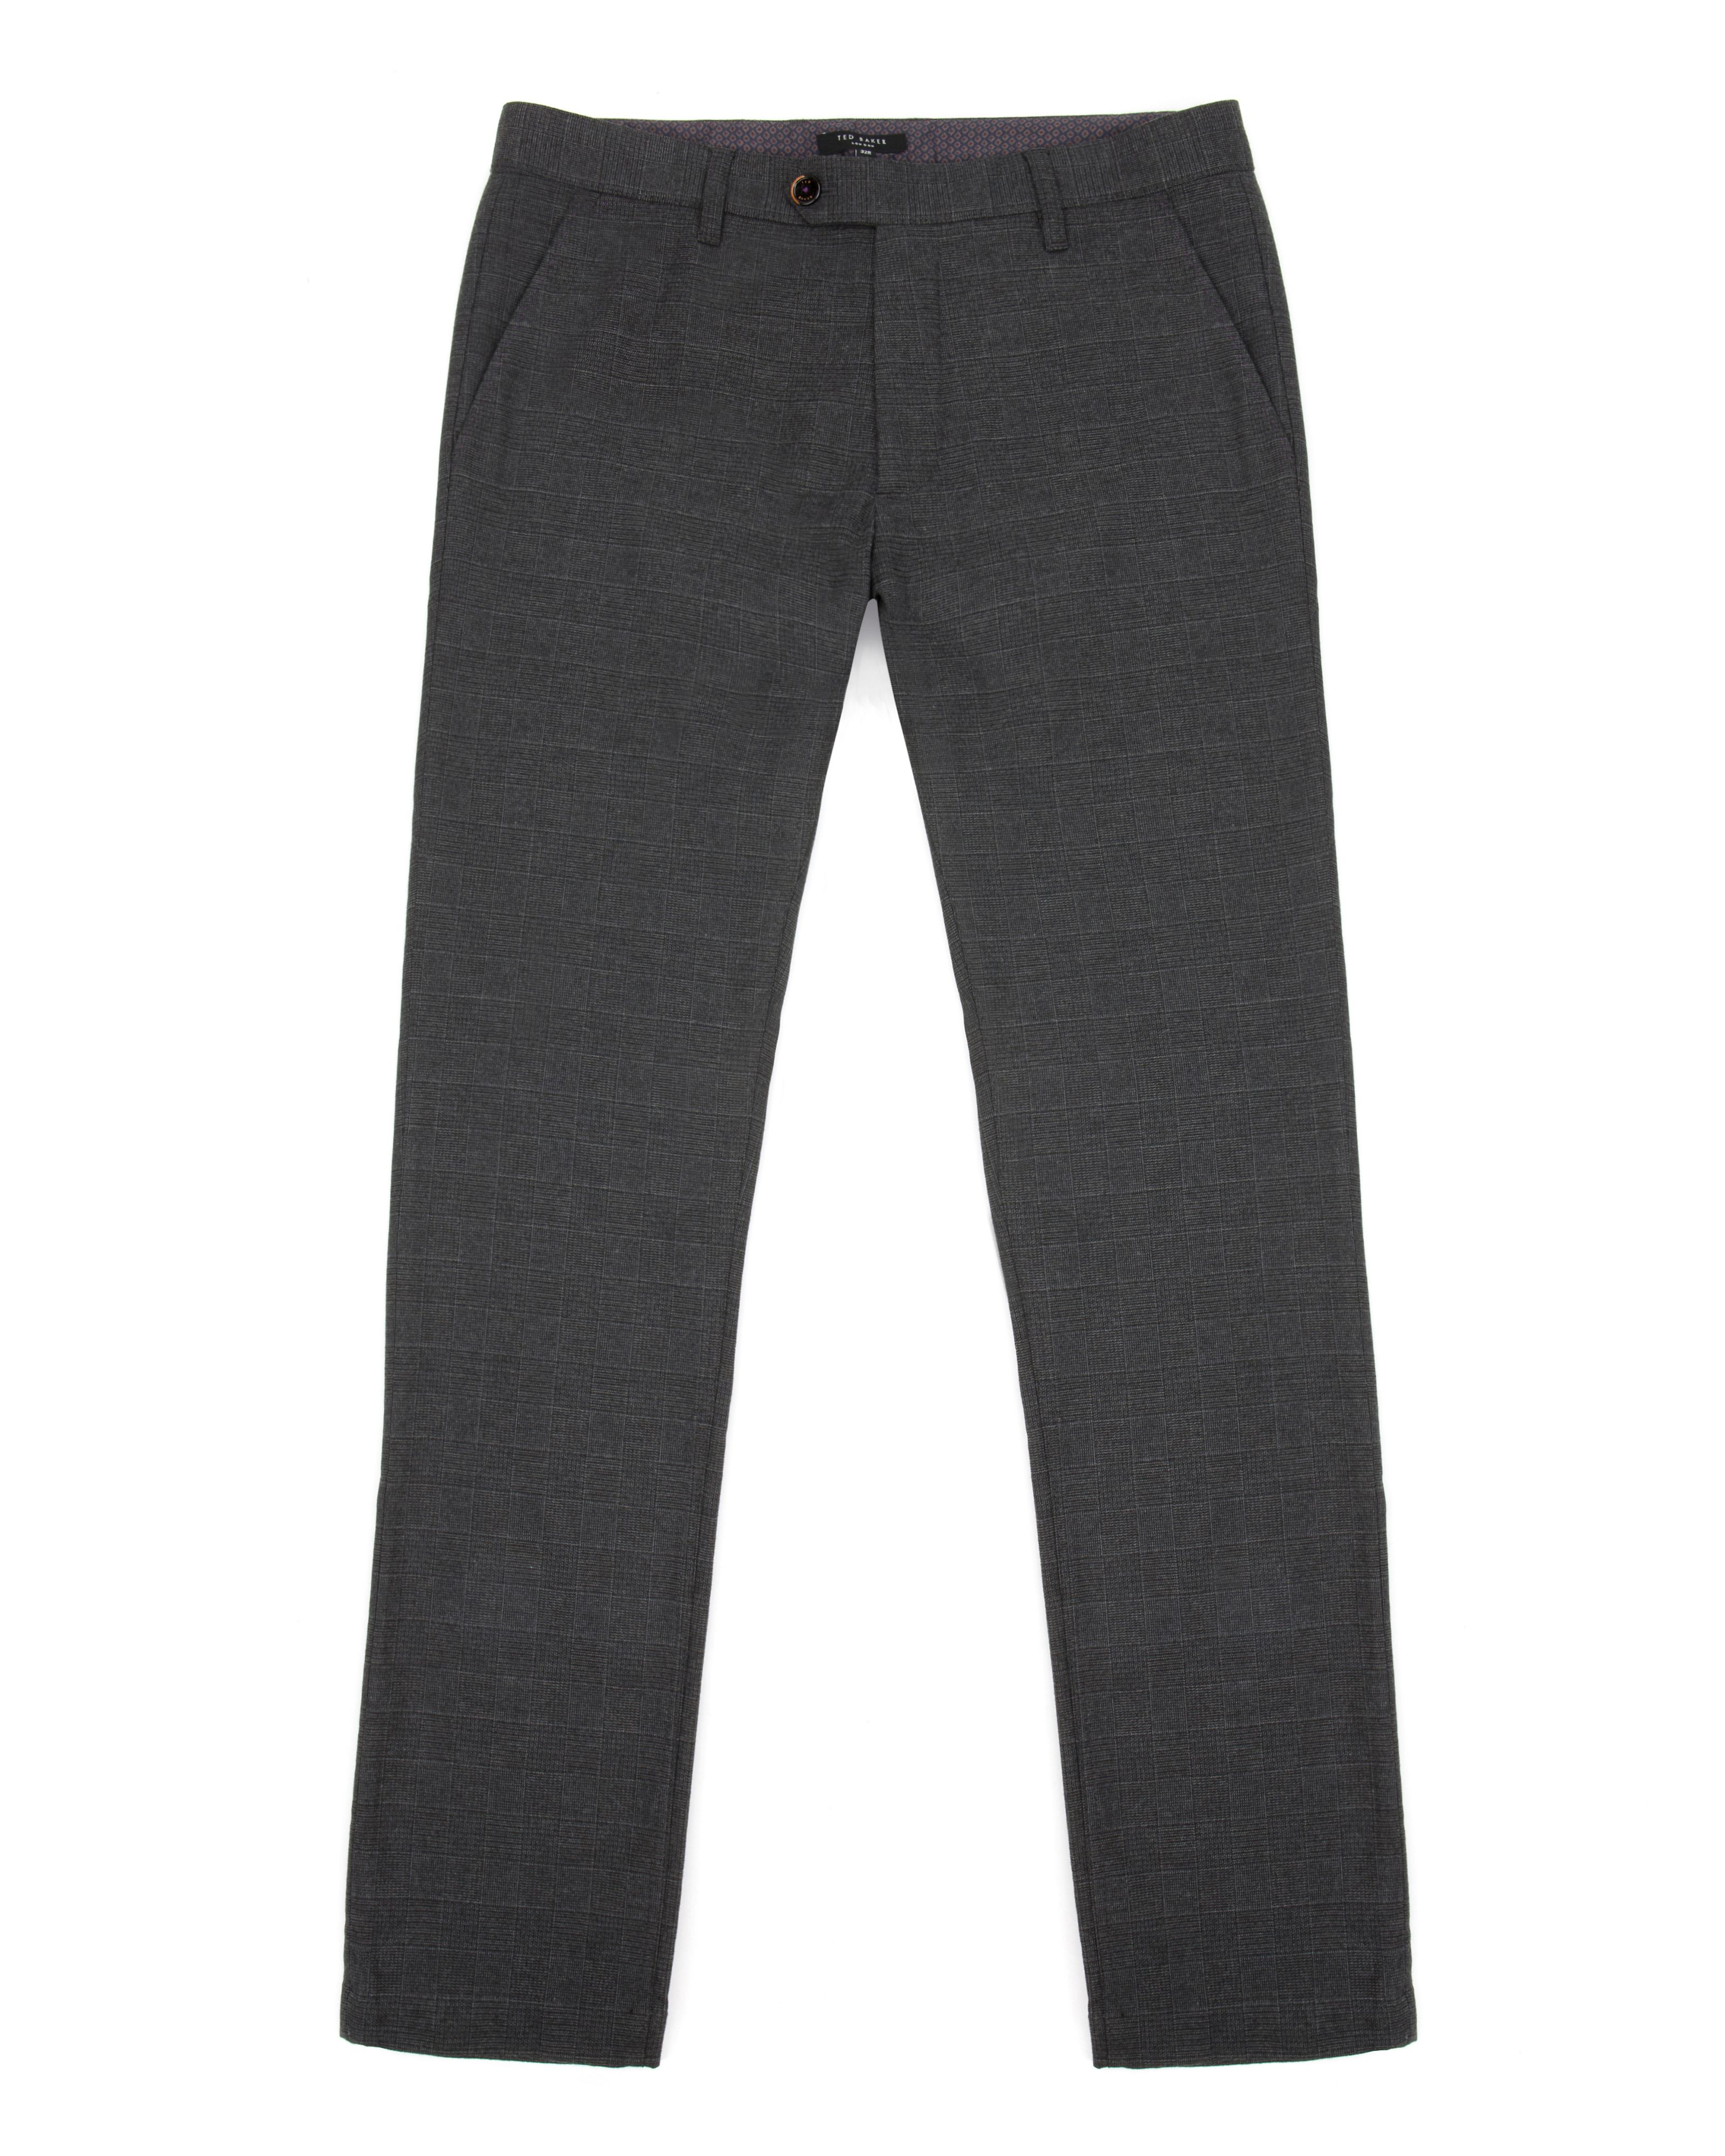 Sanslim slim fit brushed cotton trousers